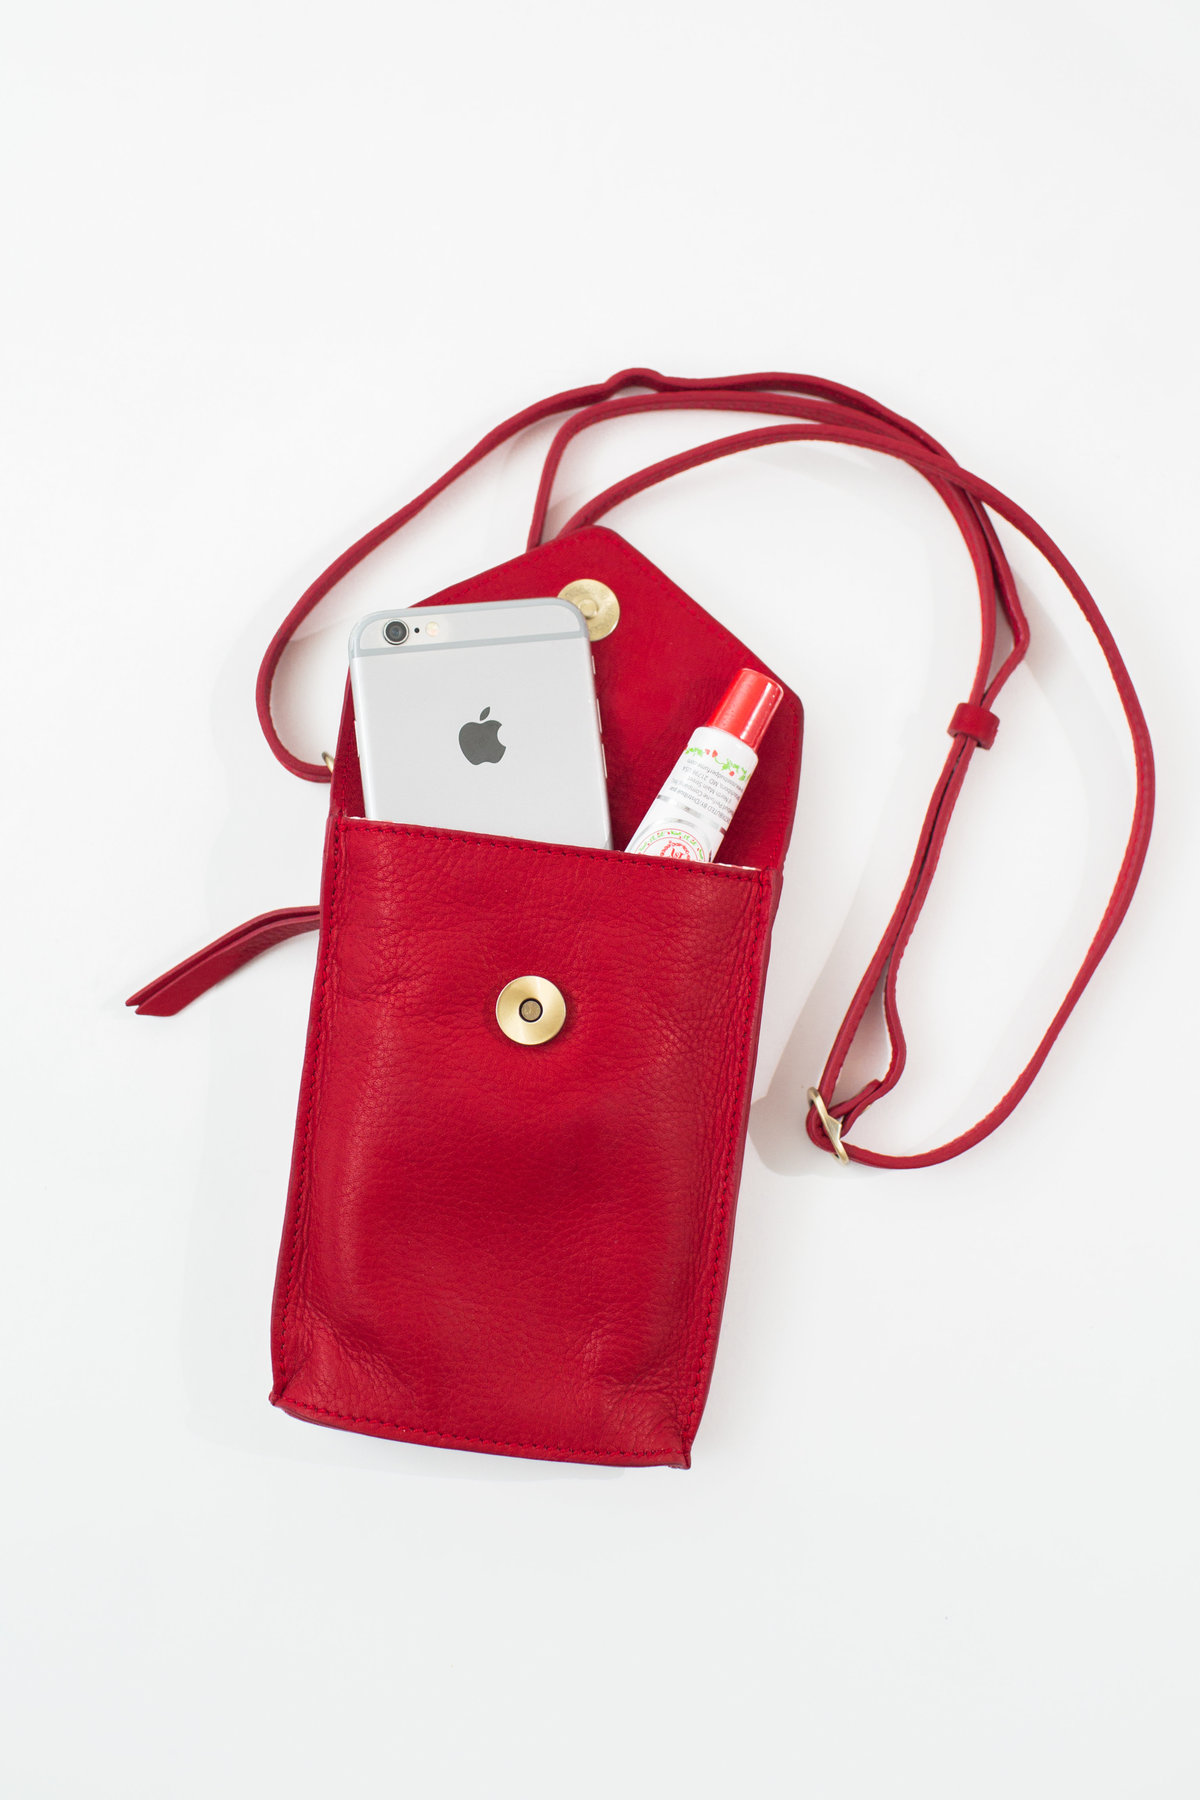 commercial product photographer modern purse bags fair trade nebraska studio